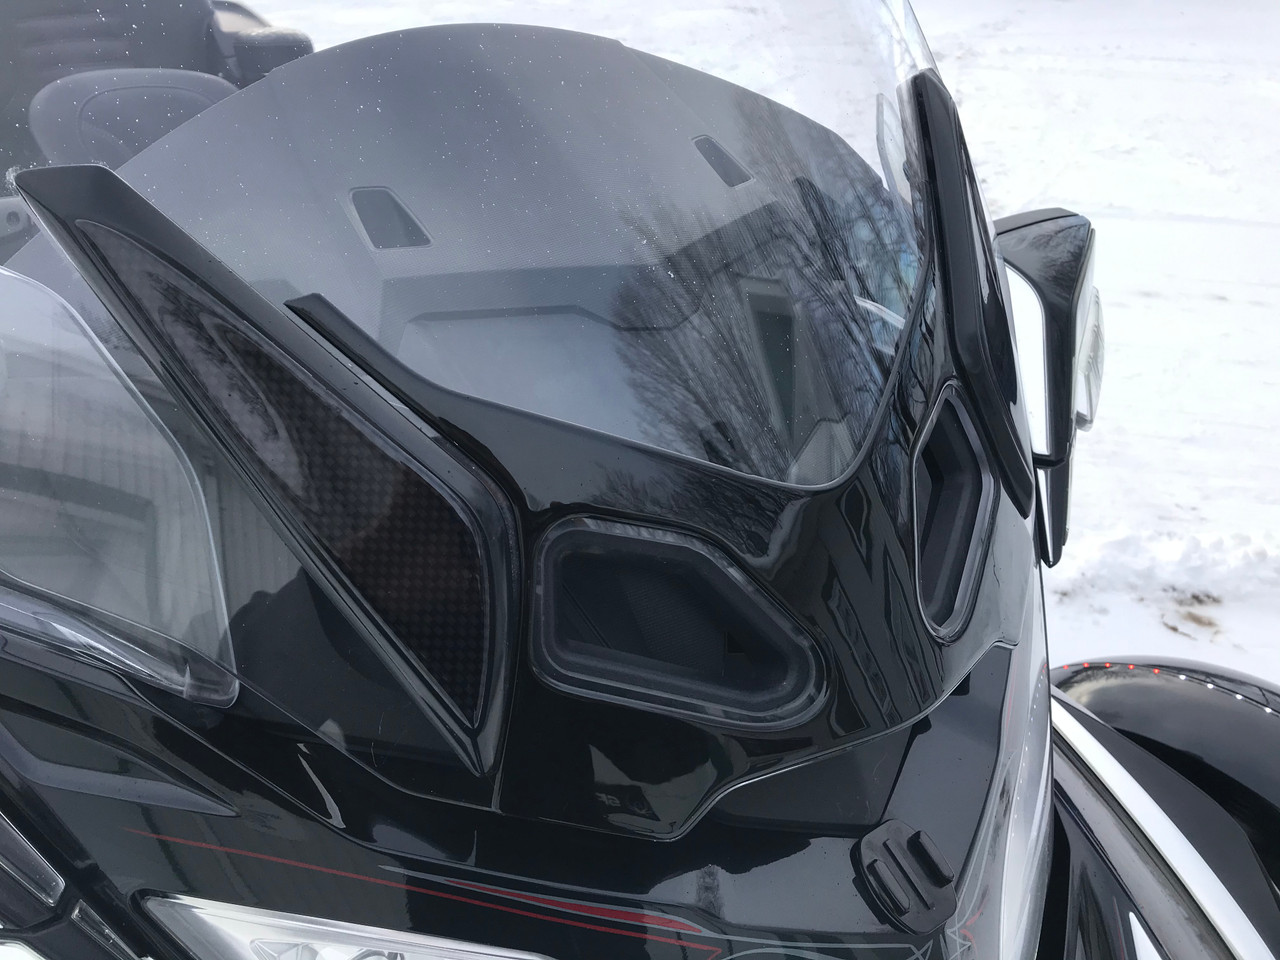 RT Series Glossy Black Polyurethane Windshield Blackout - fits BRP stock windshield